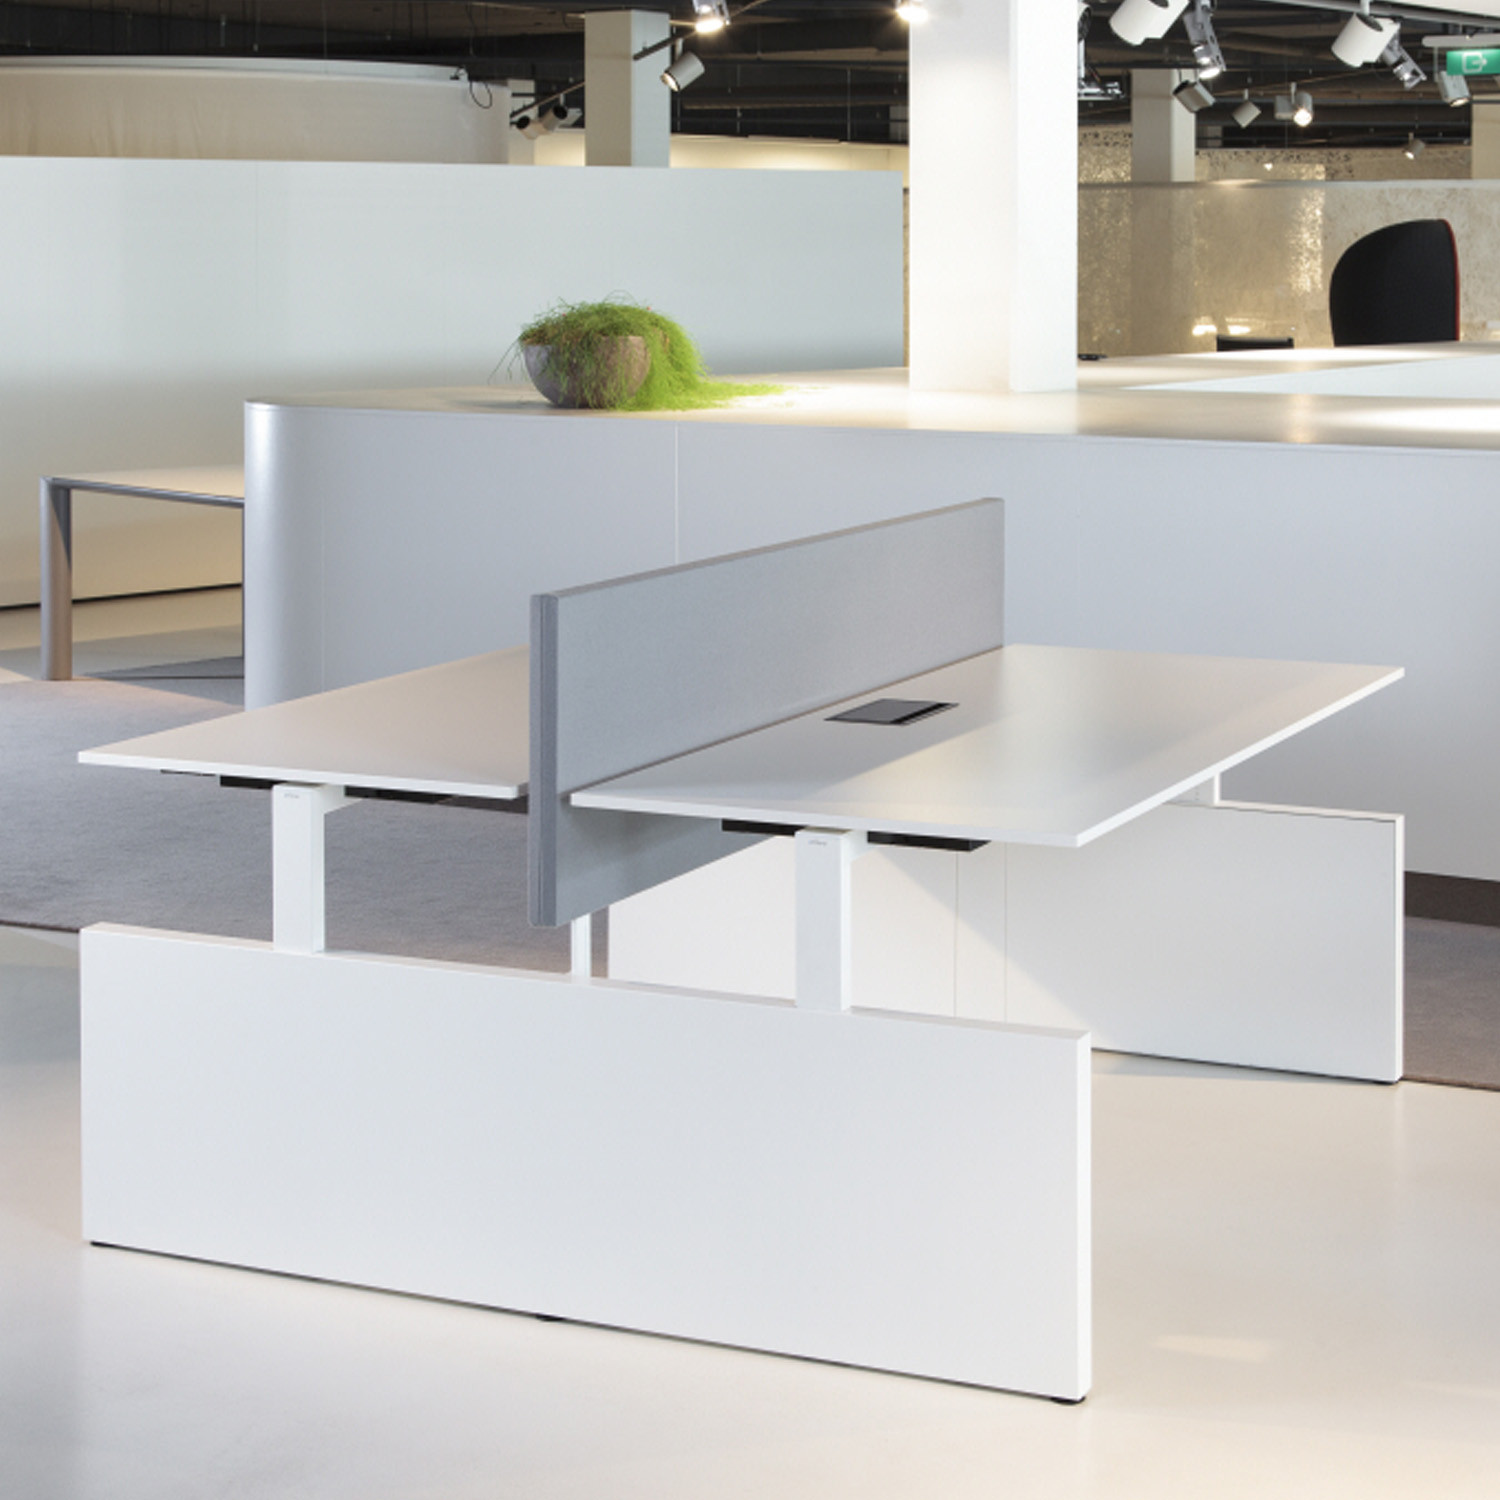 Ahrend Team_Up Height Adjustable Desks